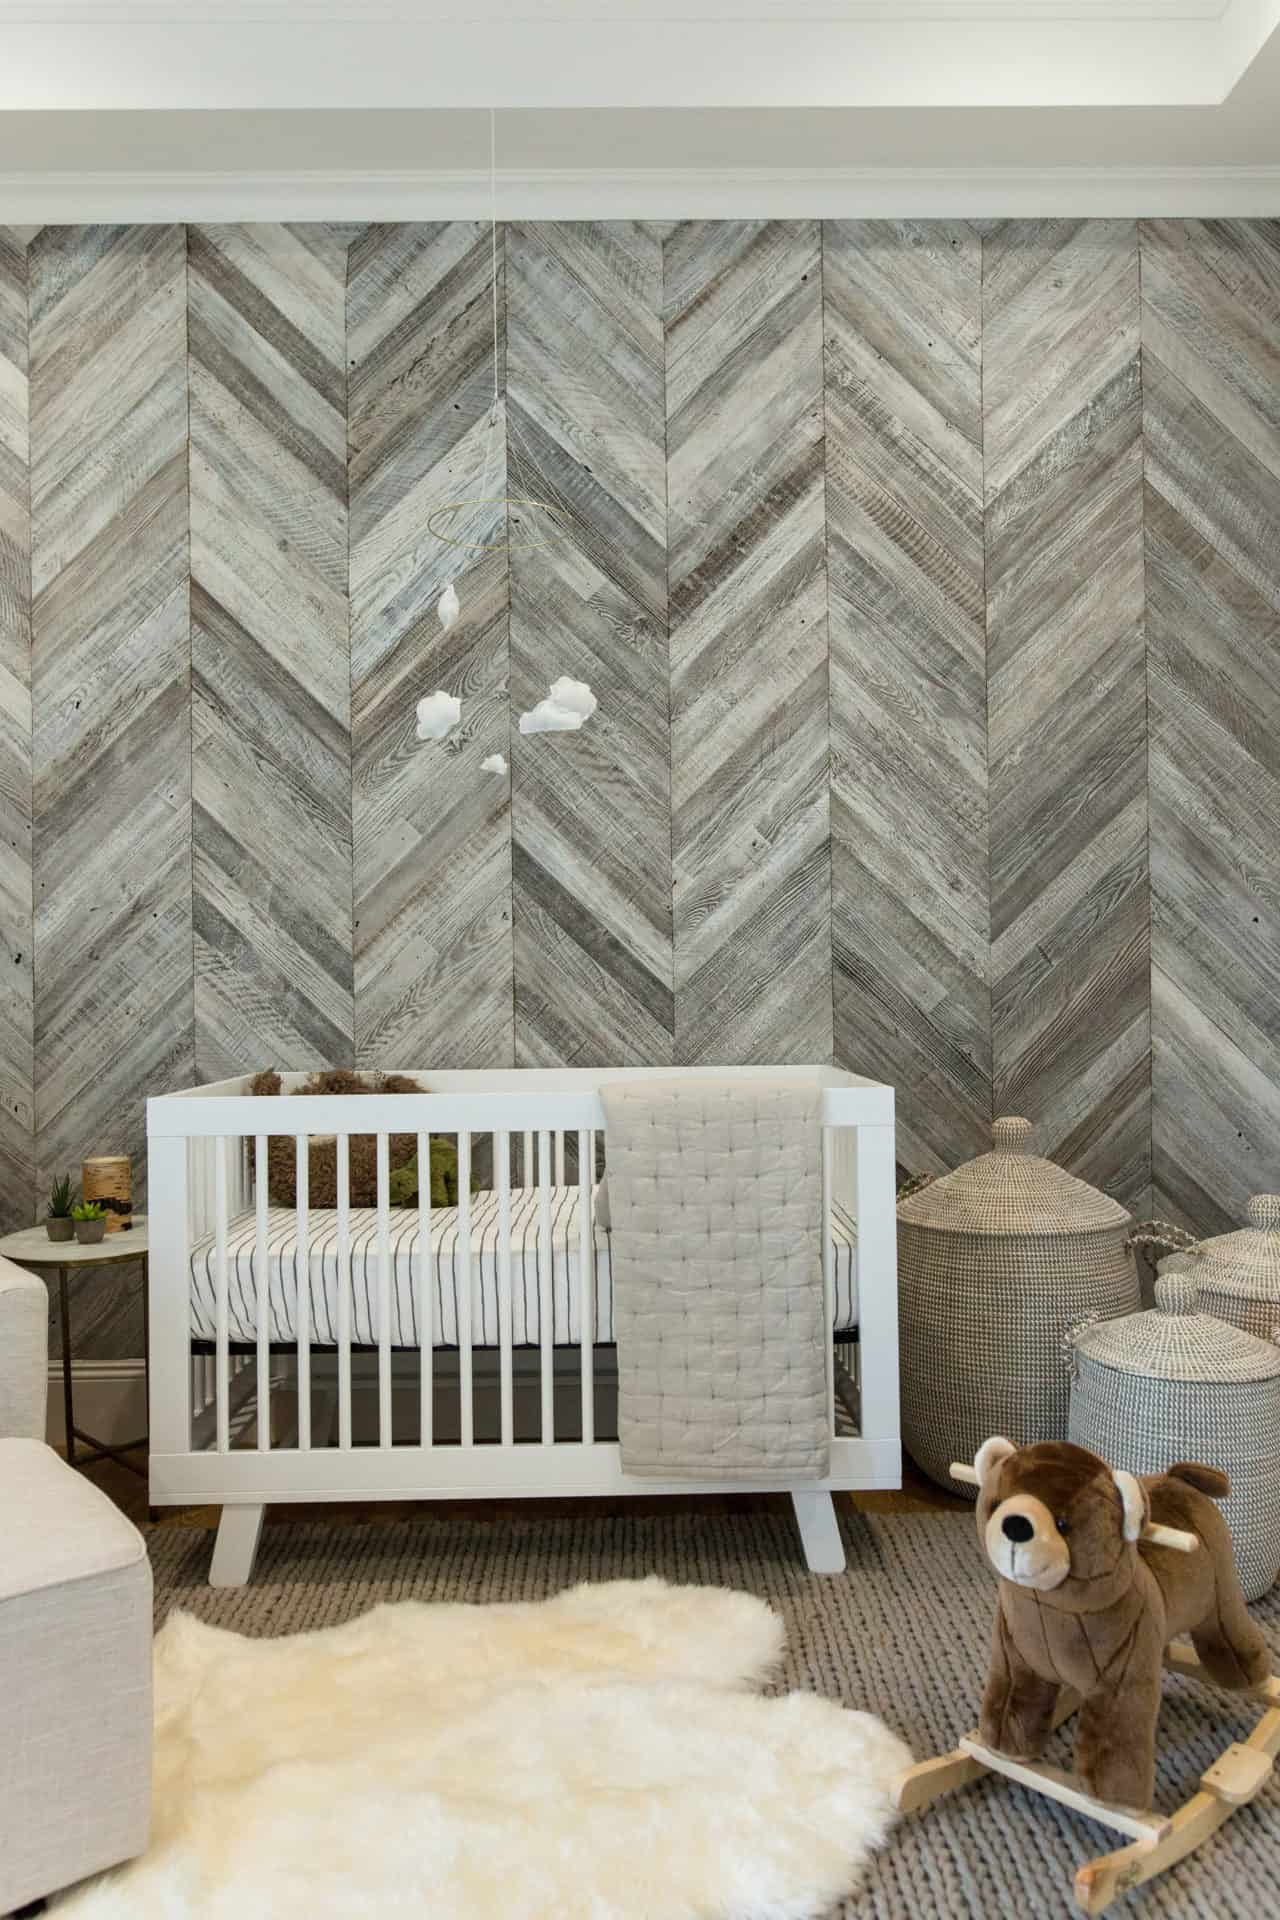 Diy herringbone wood wall